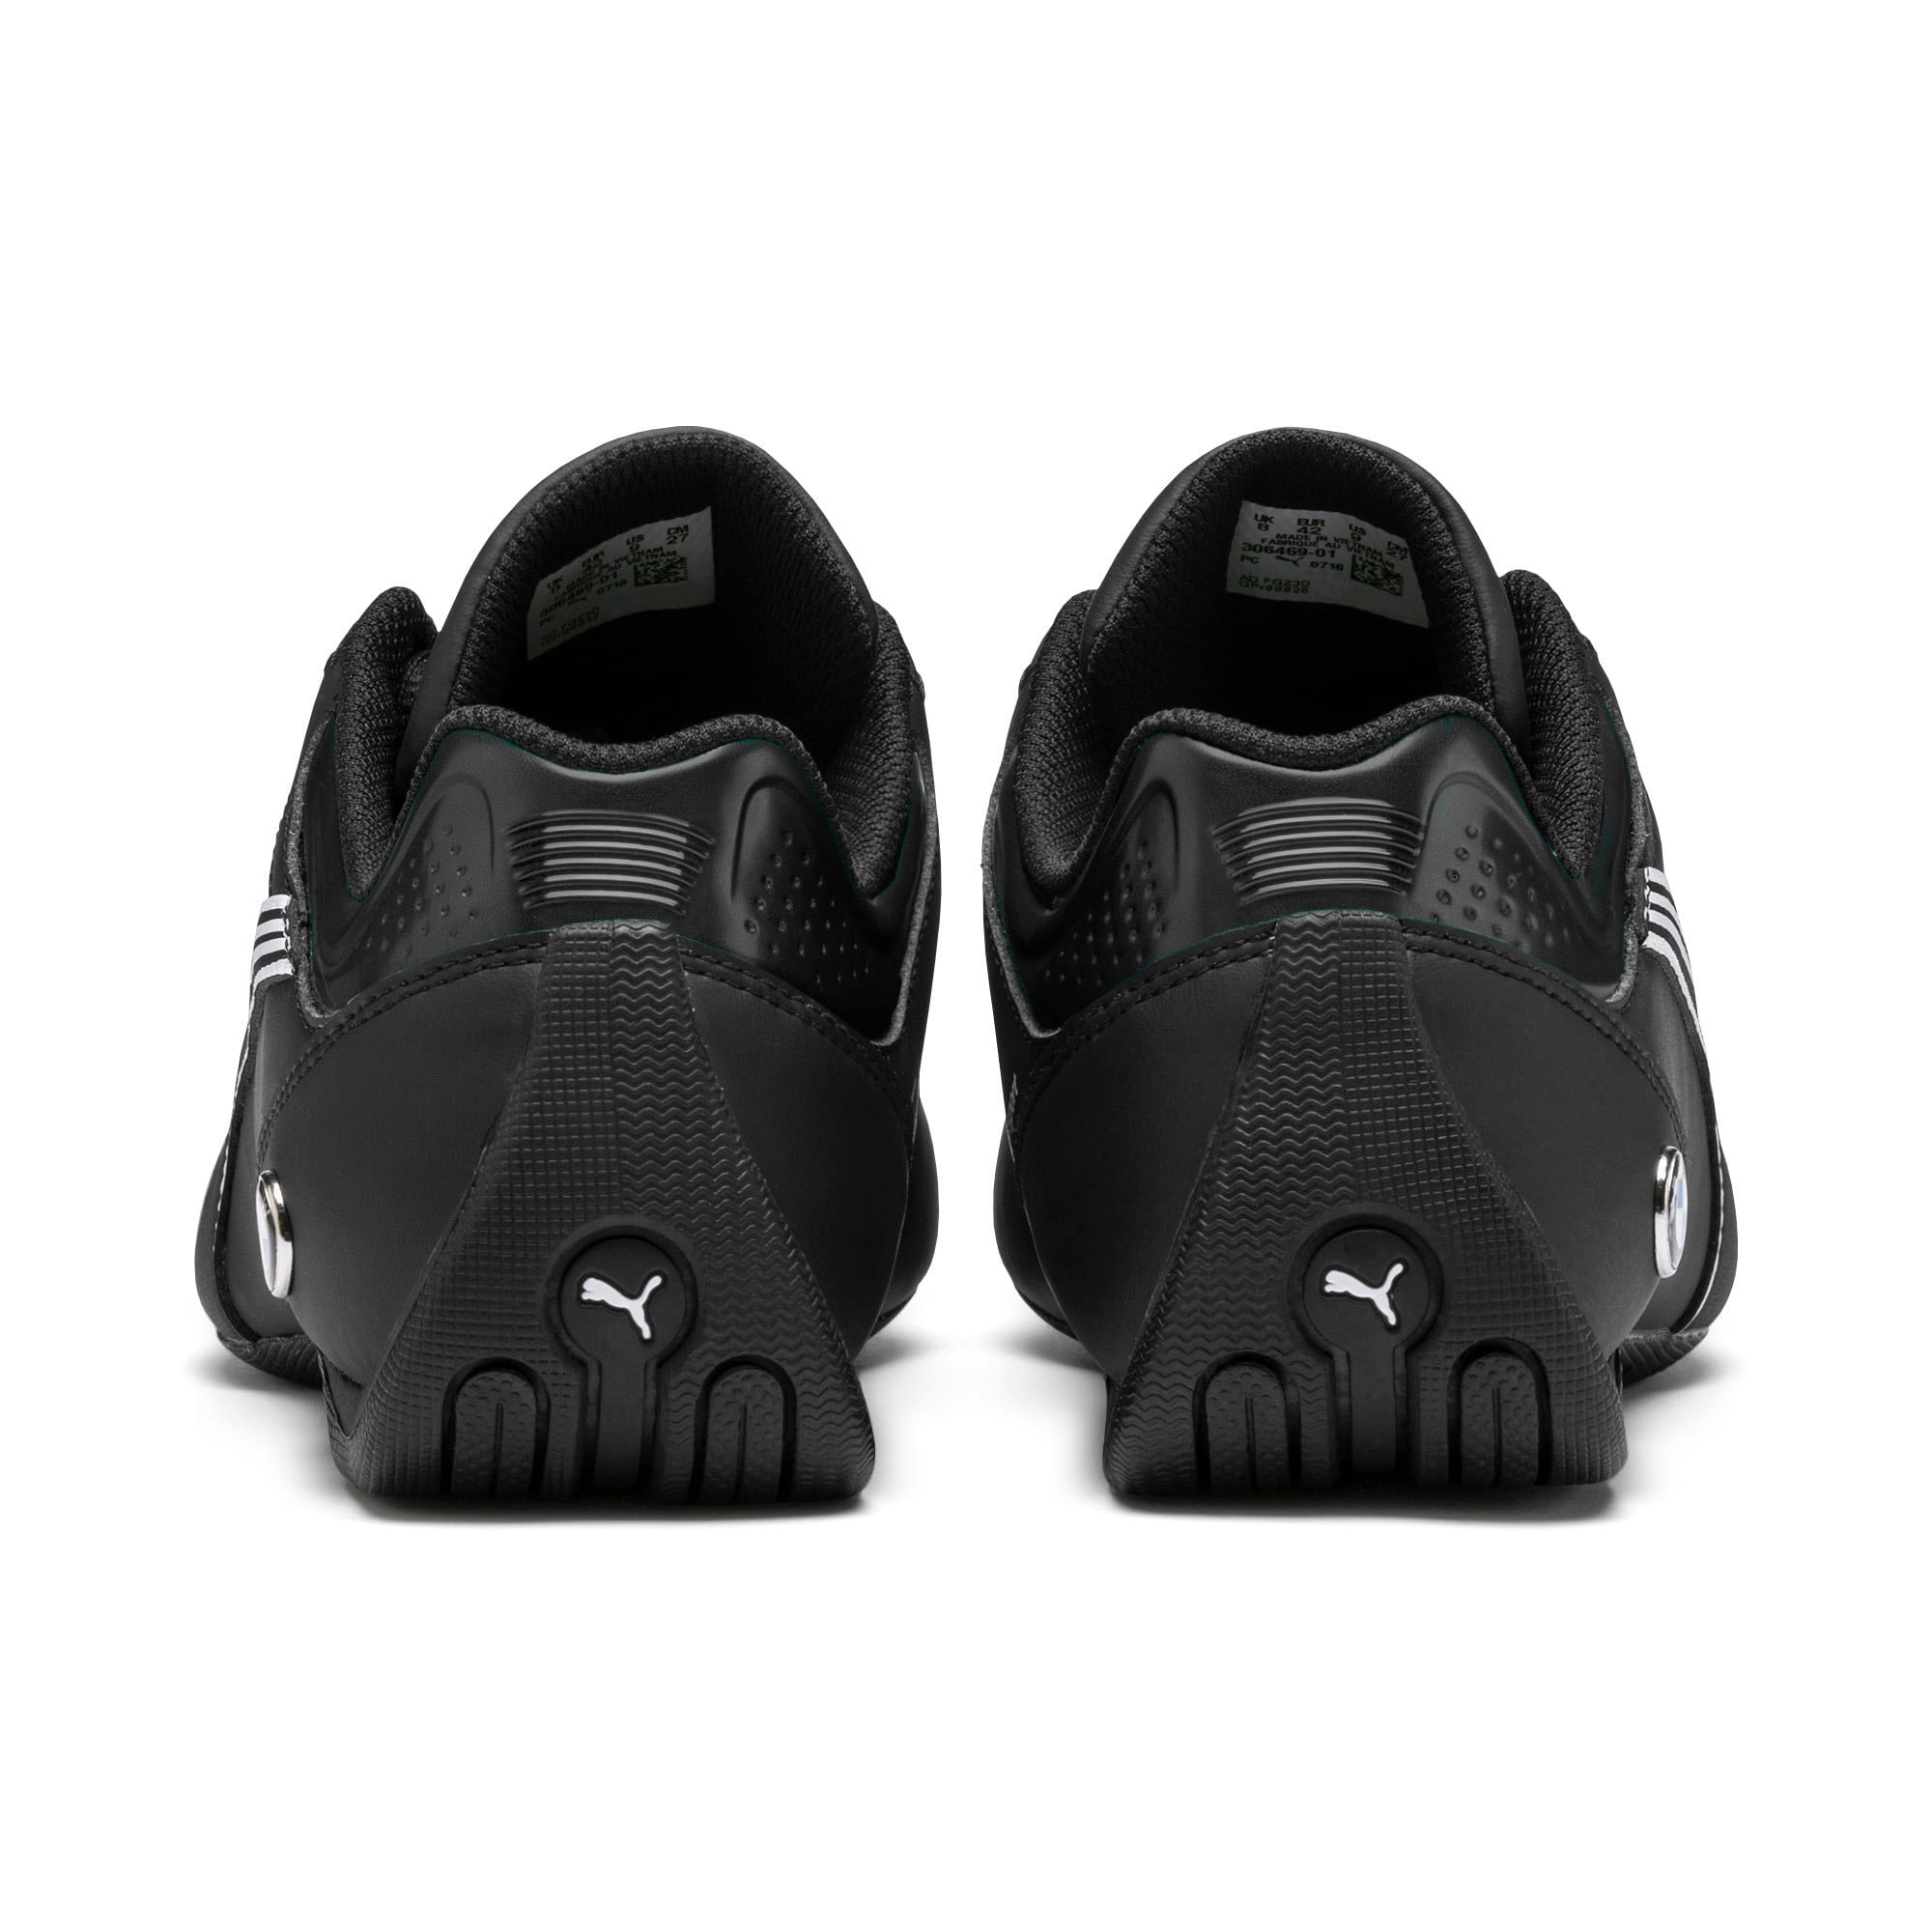 Thumbnail 5 of BMW M Motorsport Future Kart Cat Trainers, Puma Black-Puma White, medium-IND